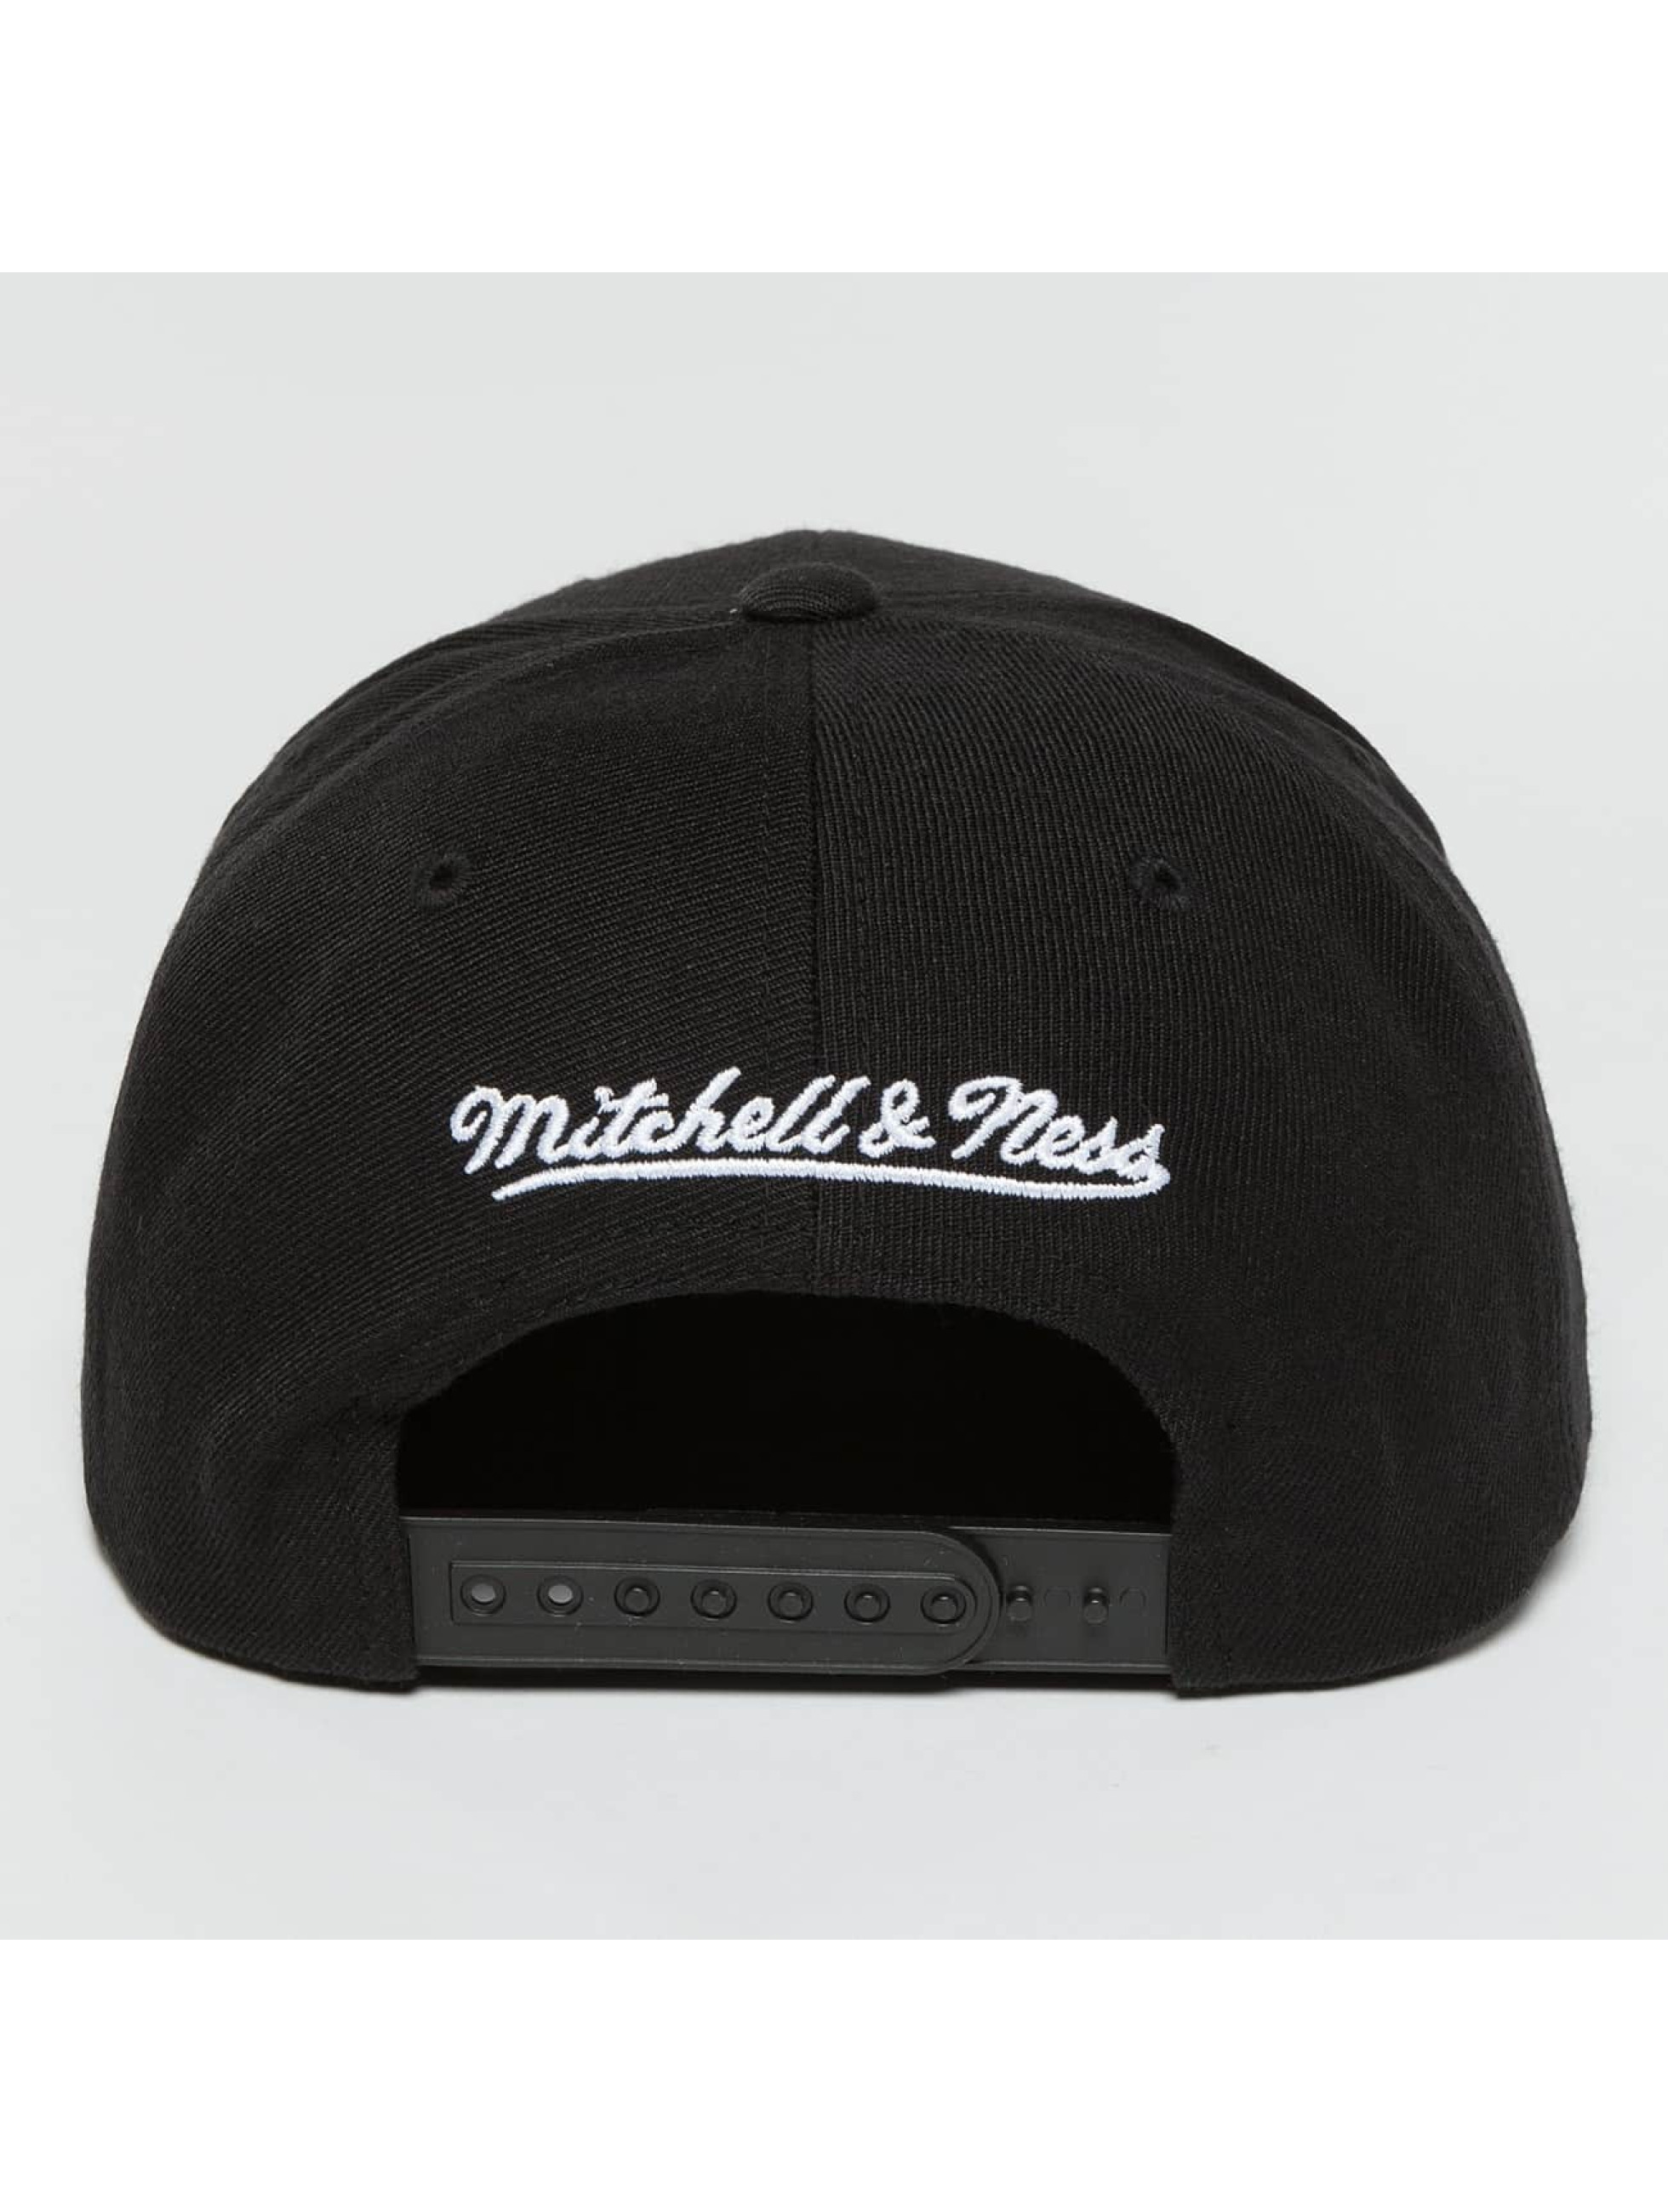 Mitchell & Ness Snapback Cap Full Dollar Golden State Warriors black